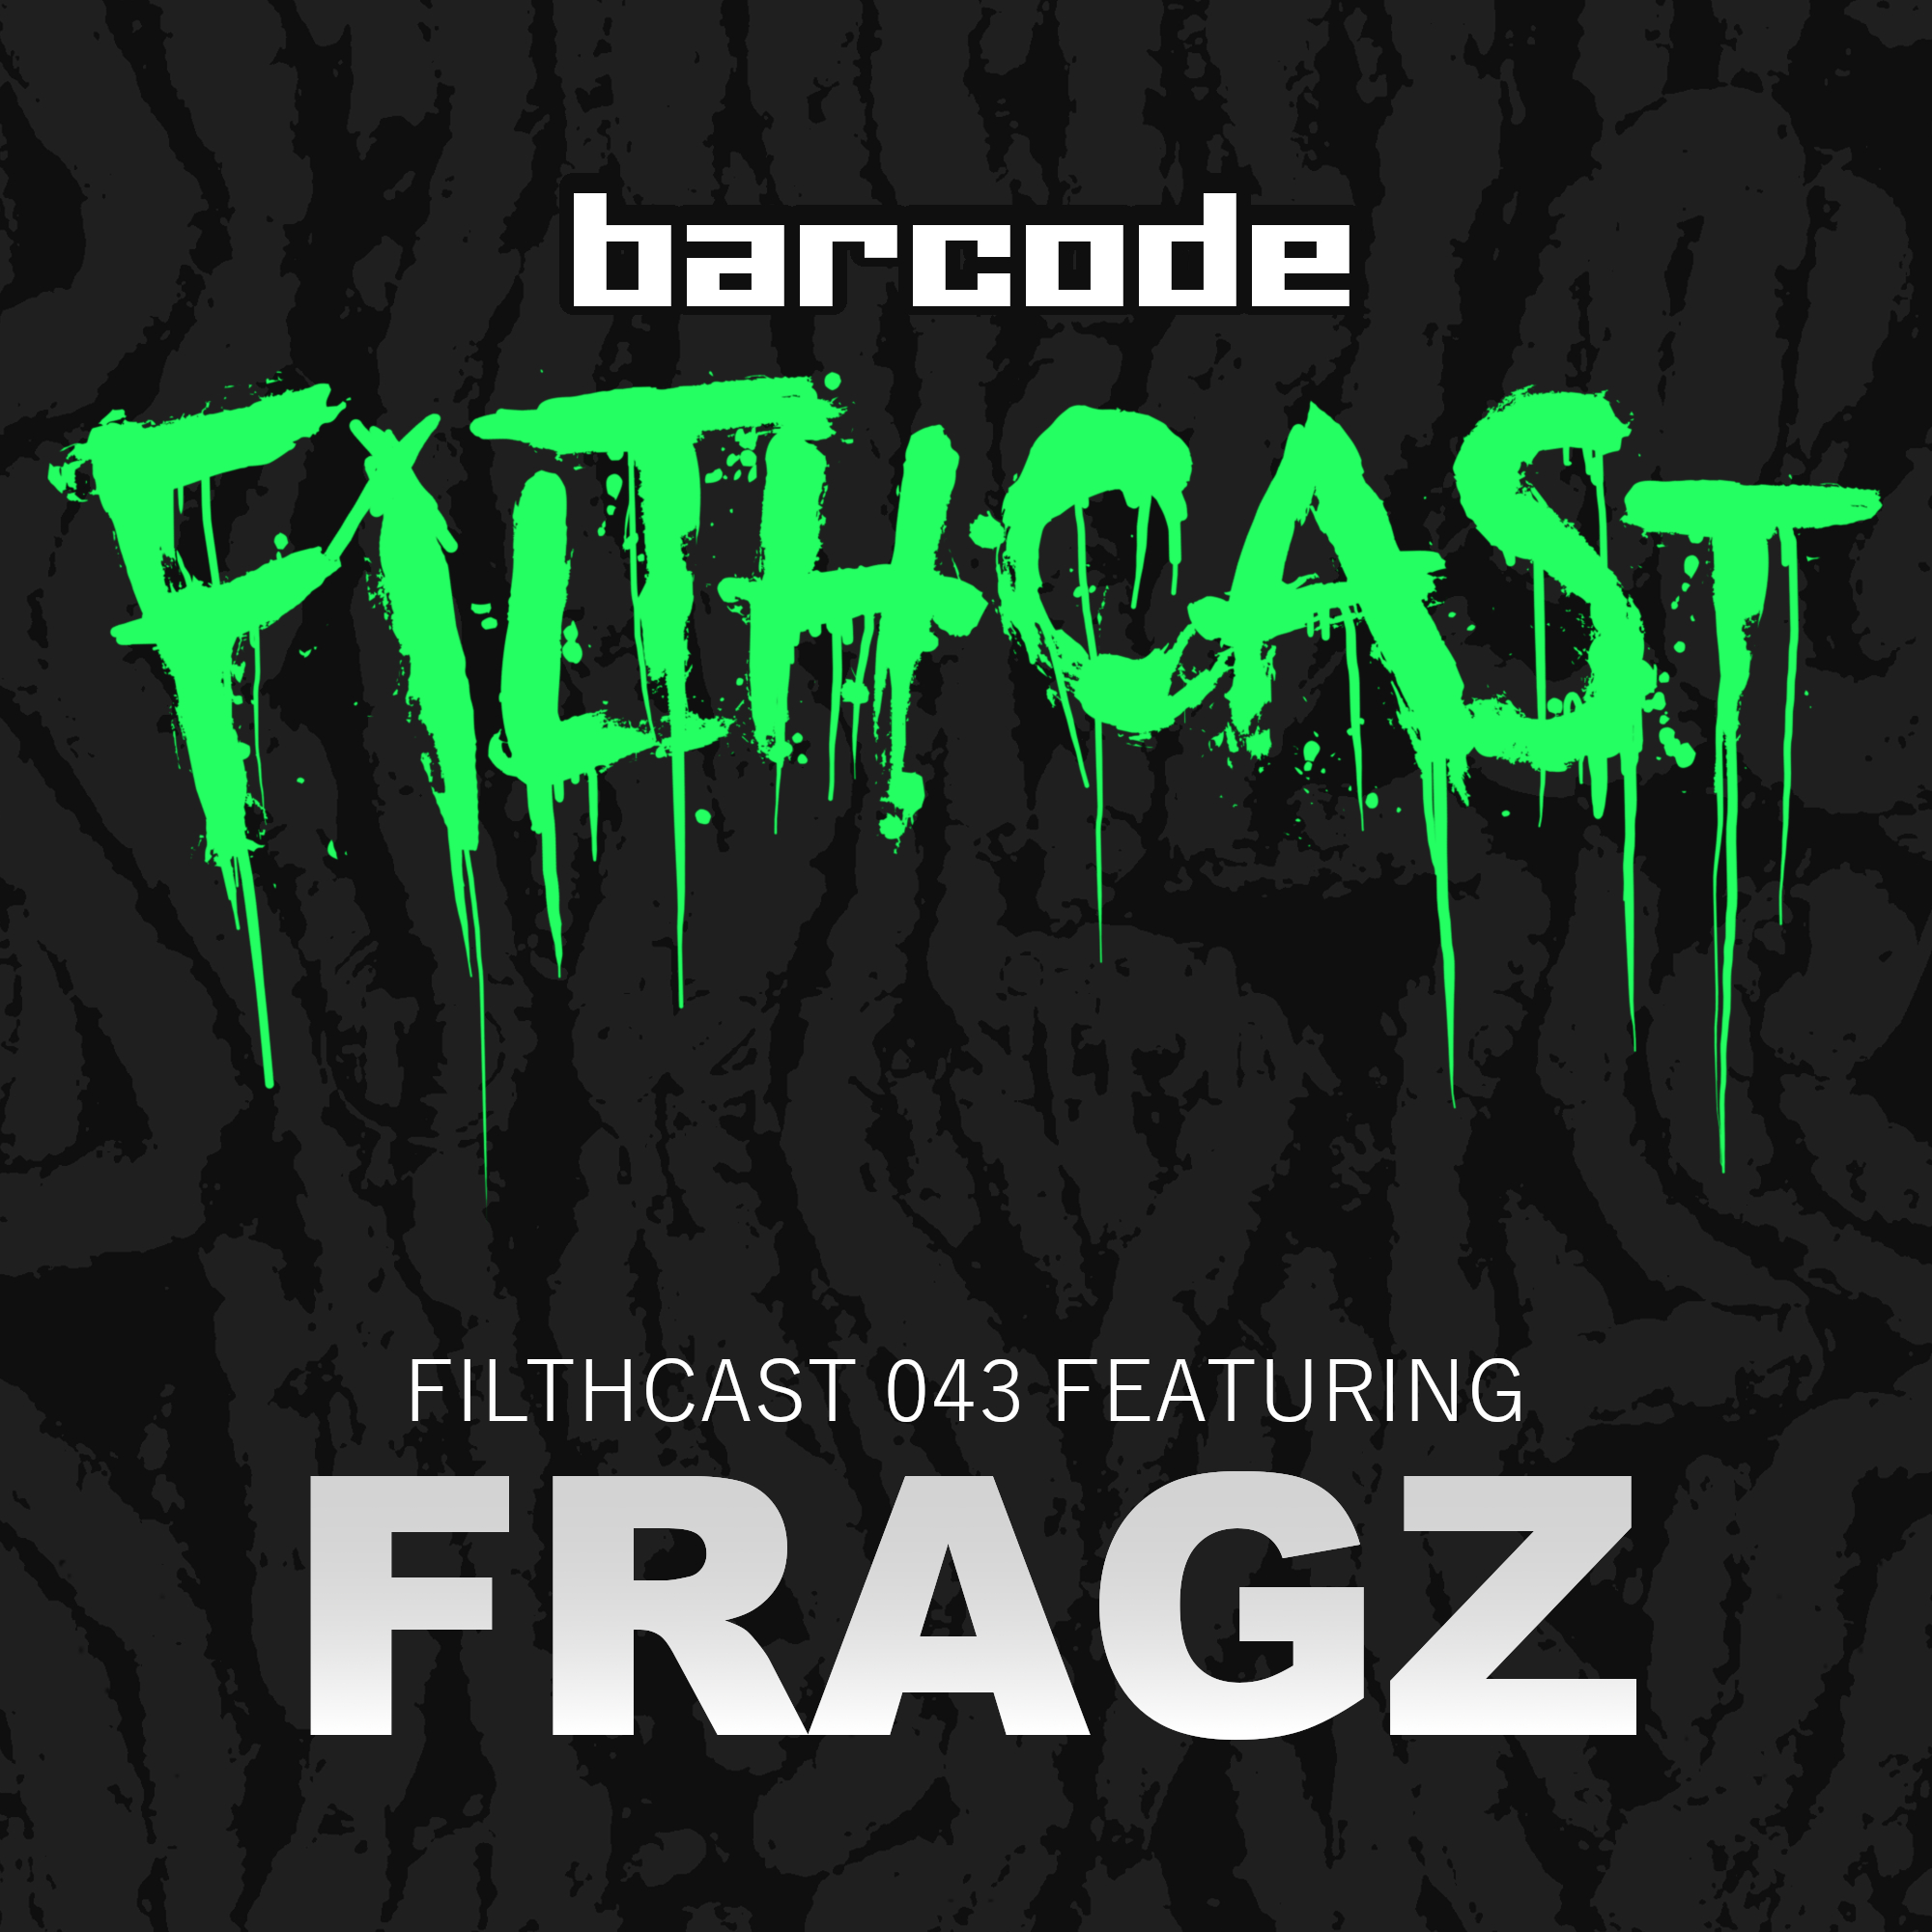 Fragz raises the dead! Are you ready for an hour of pounding drum and bass?